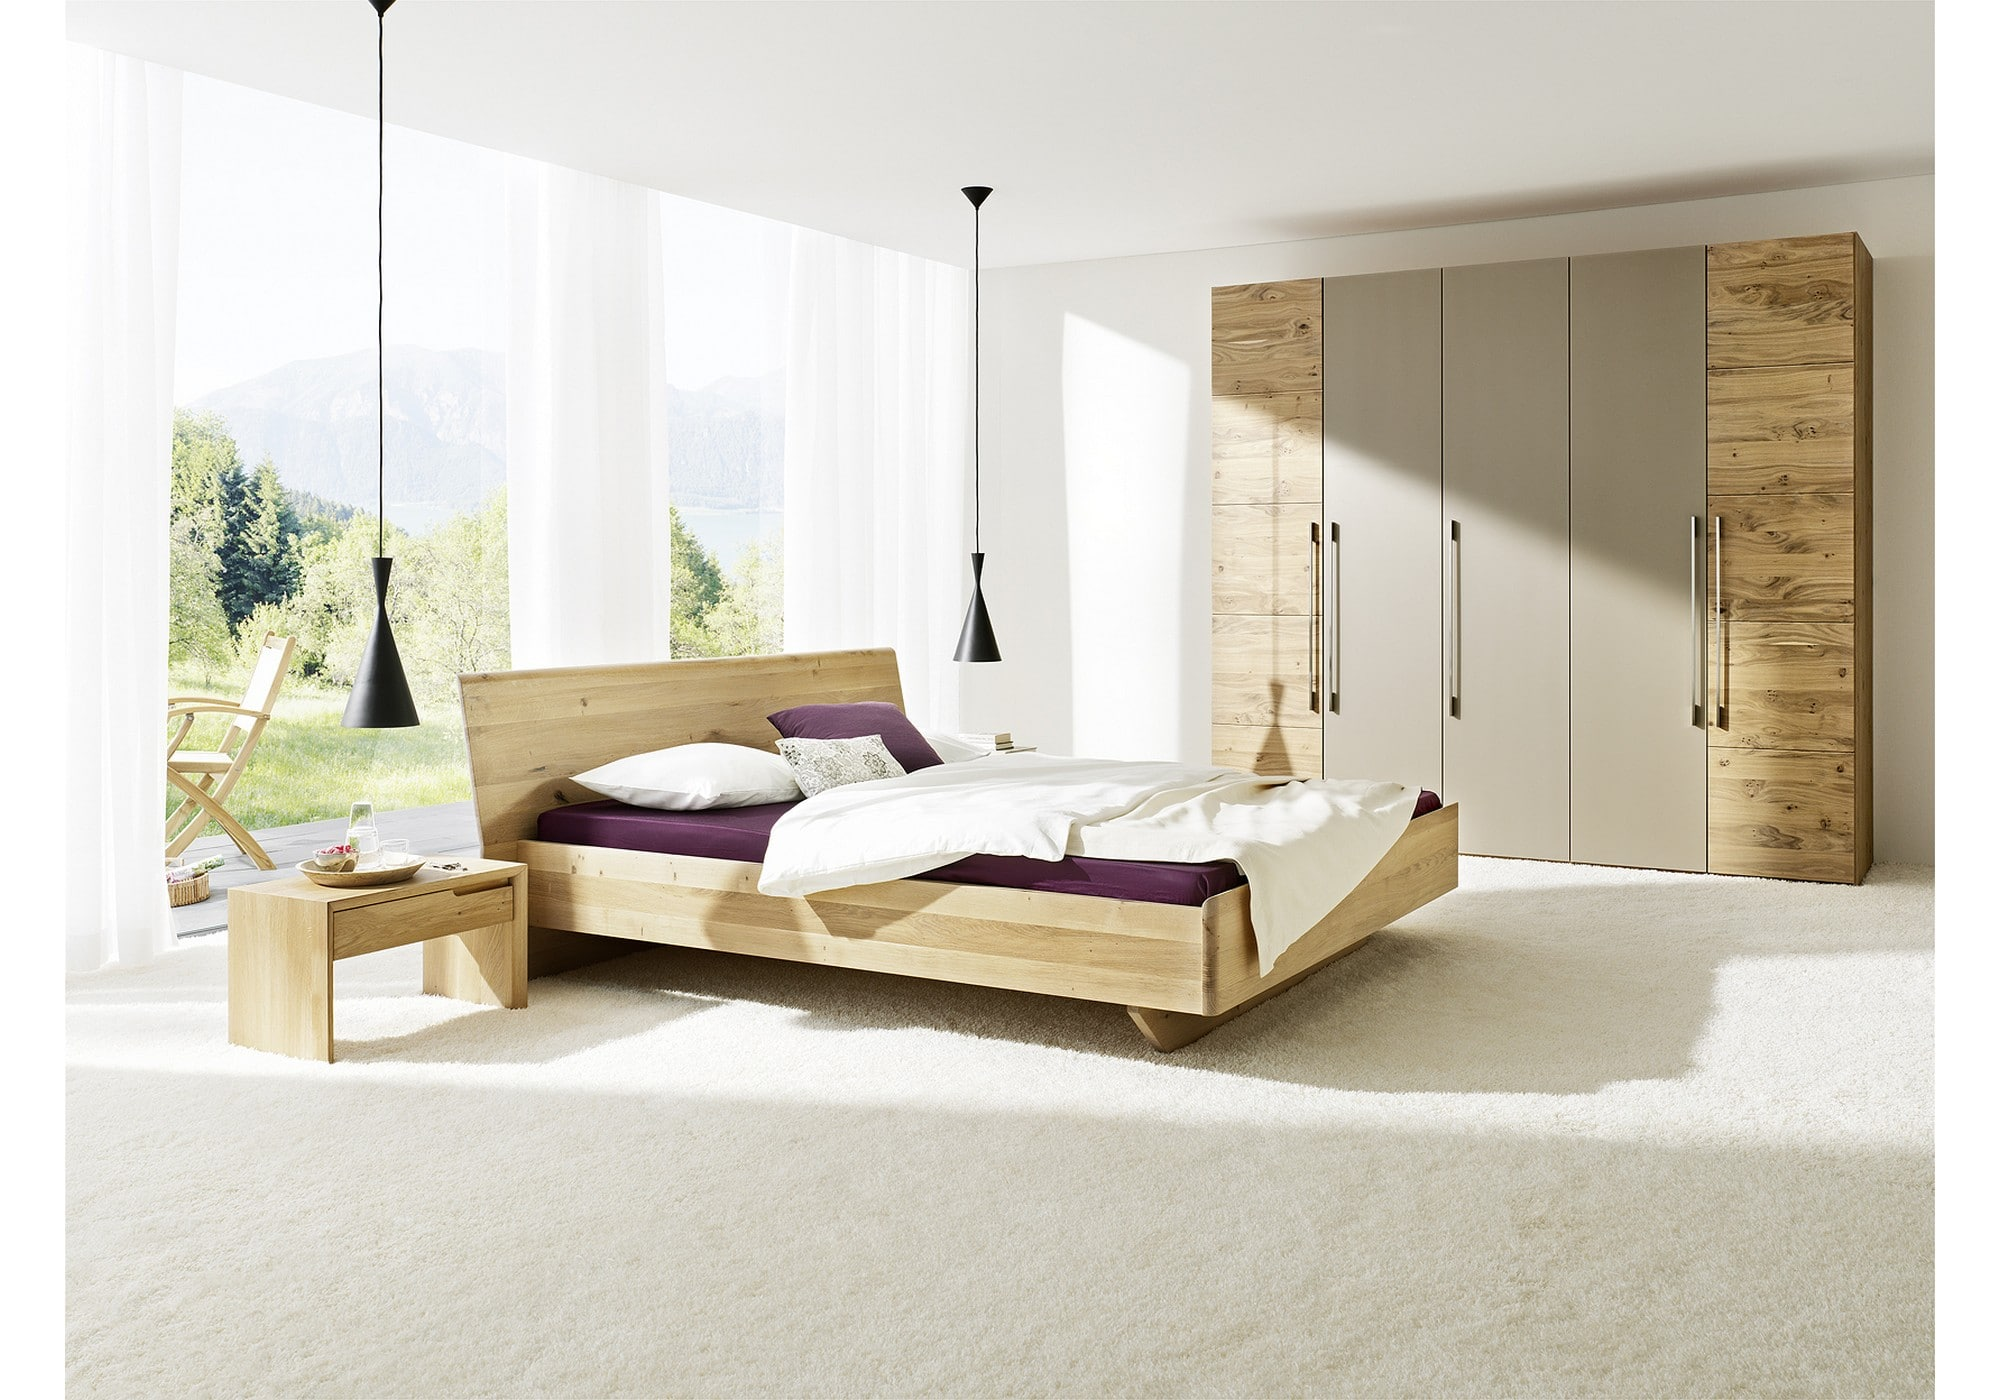 anrei massivholzbett aus zirbenholz tesso betten kraft. Black Bedroom Furniture Sets. Home Design Ideas